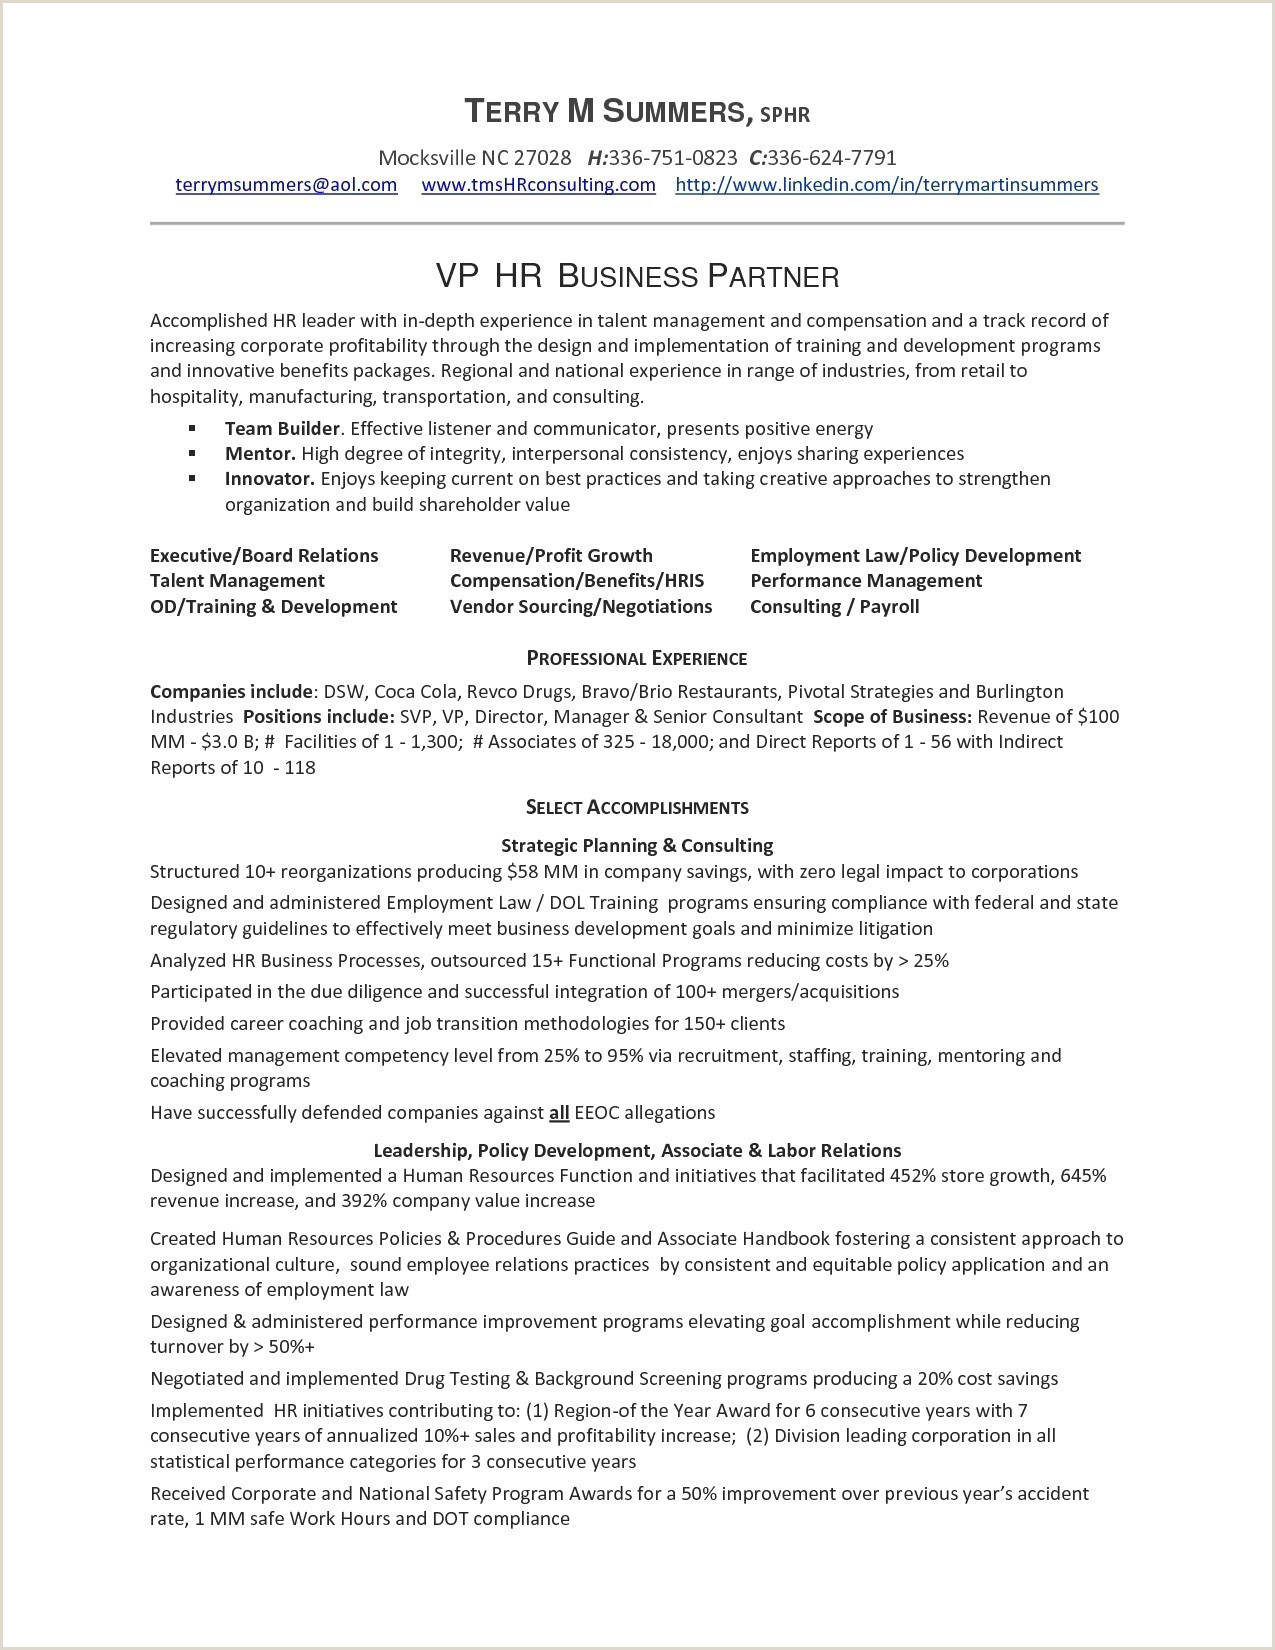 Resume format Template – Kizi games